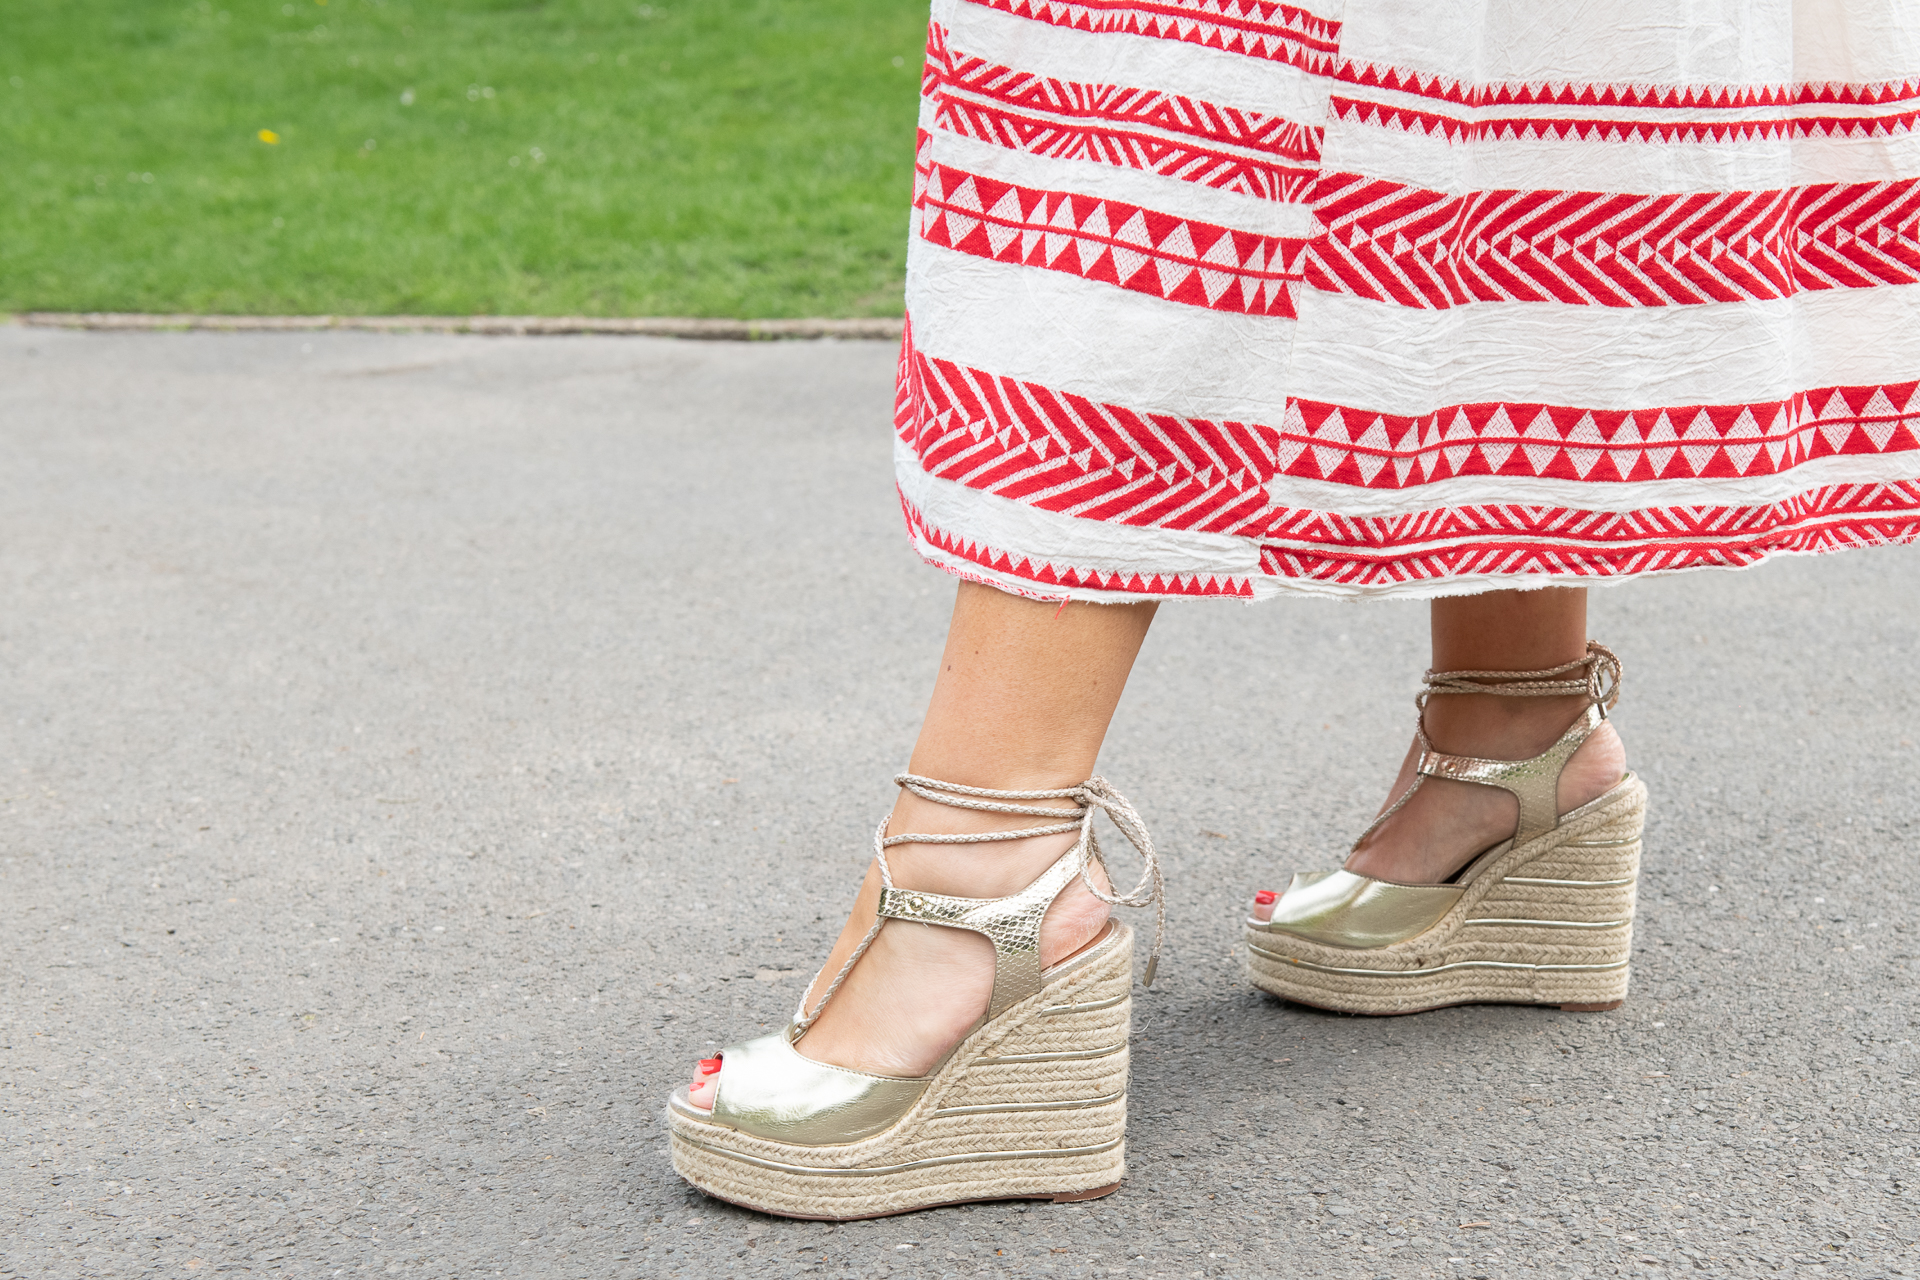 5 SHOES THAT WILL GO WITH EVERY SUMMER OUTFIT YOU OWN